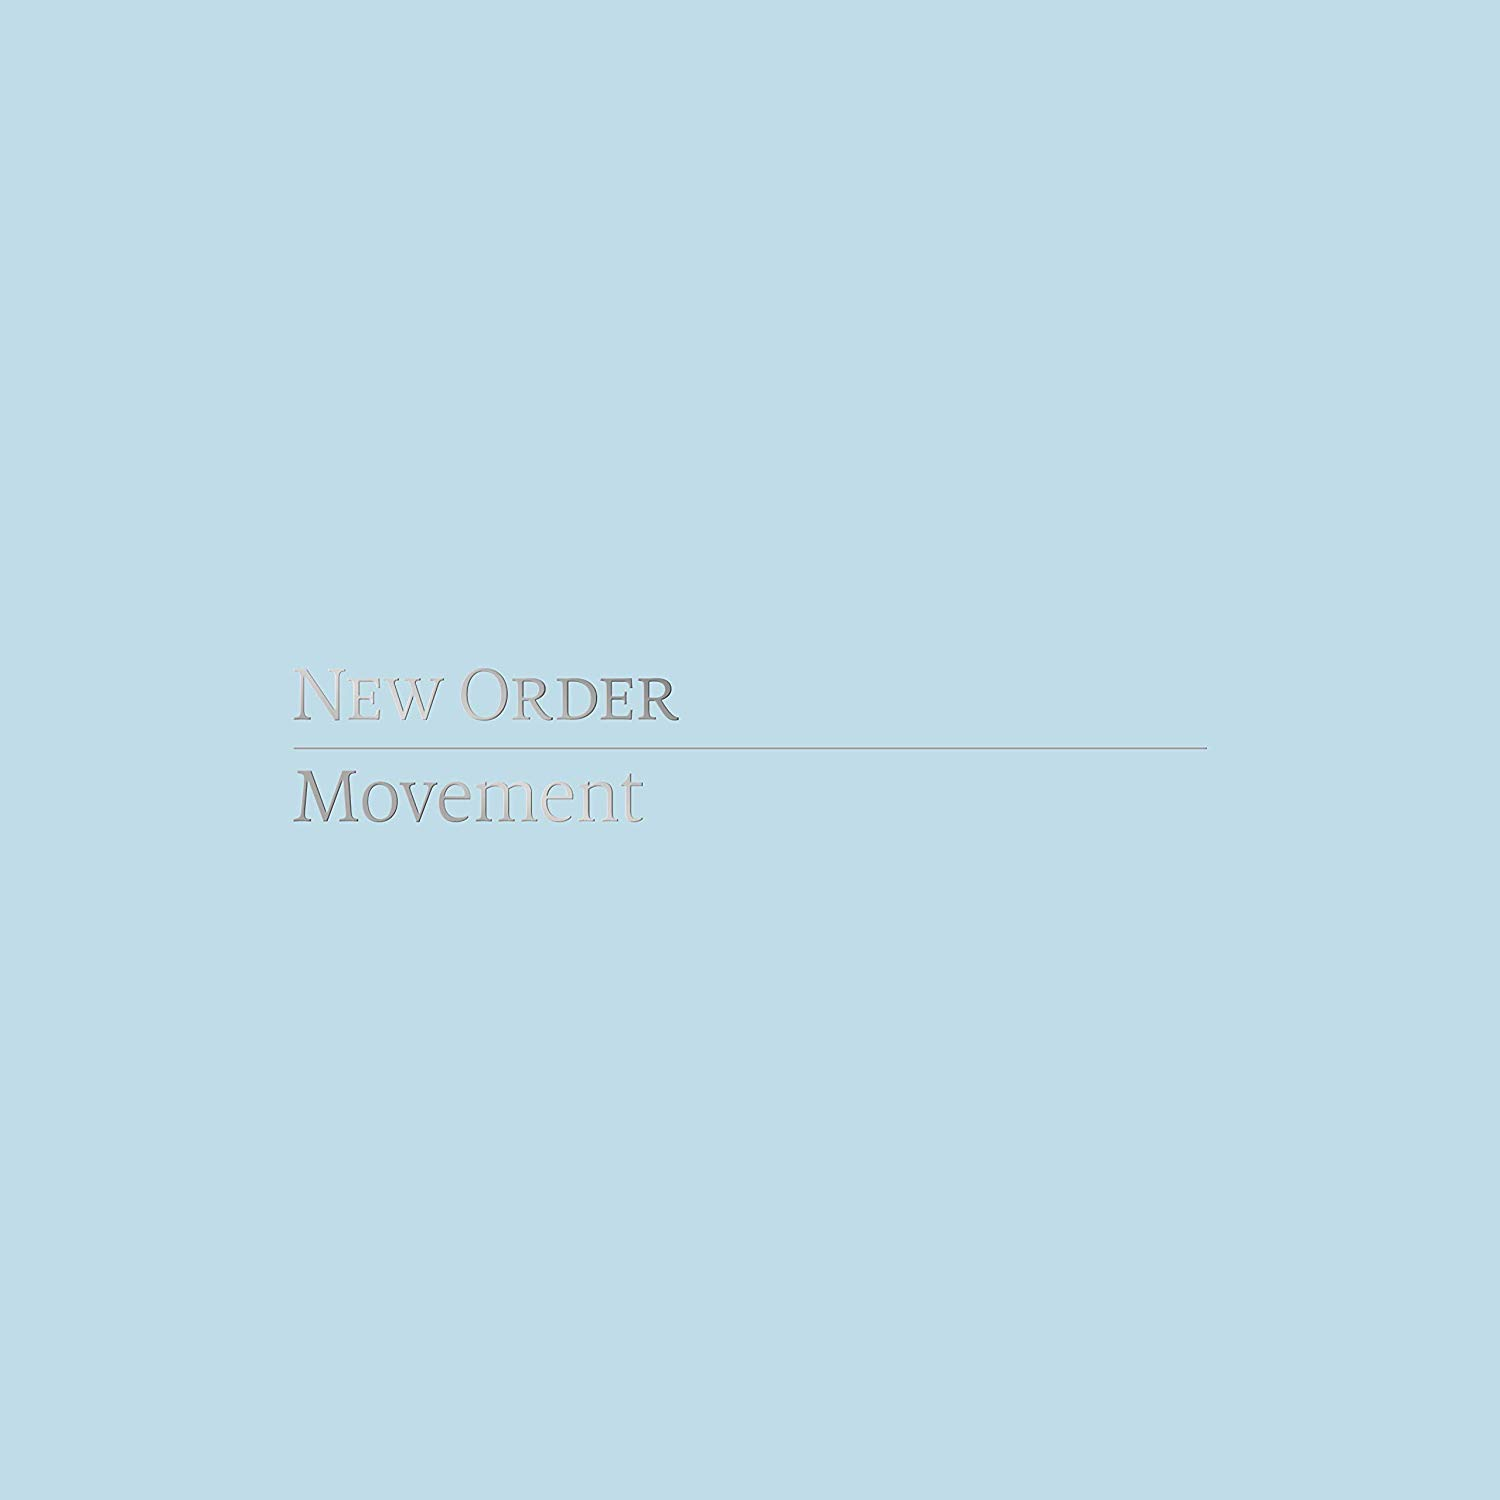 New Order - Movement Definitive Edition